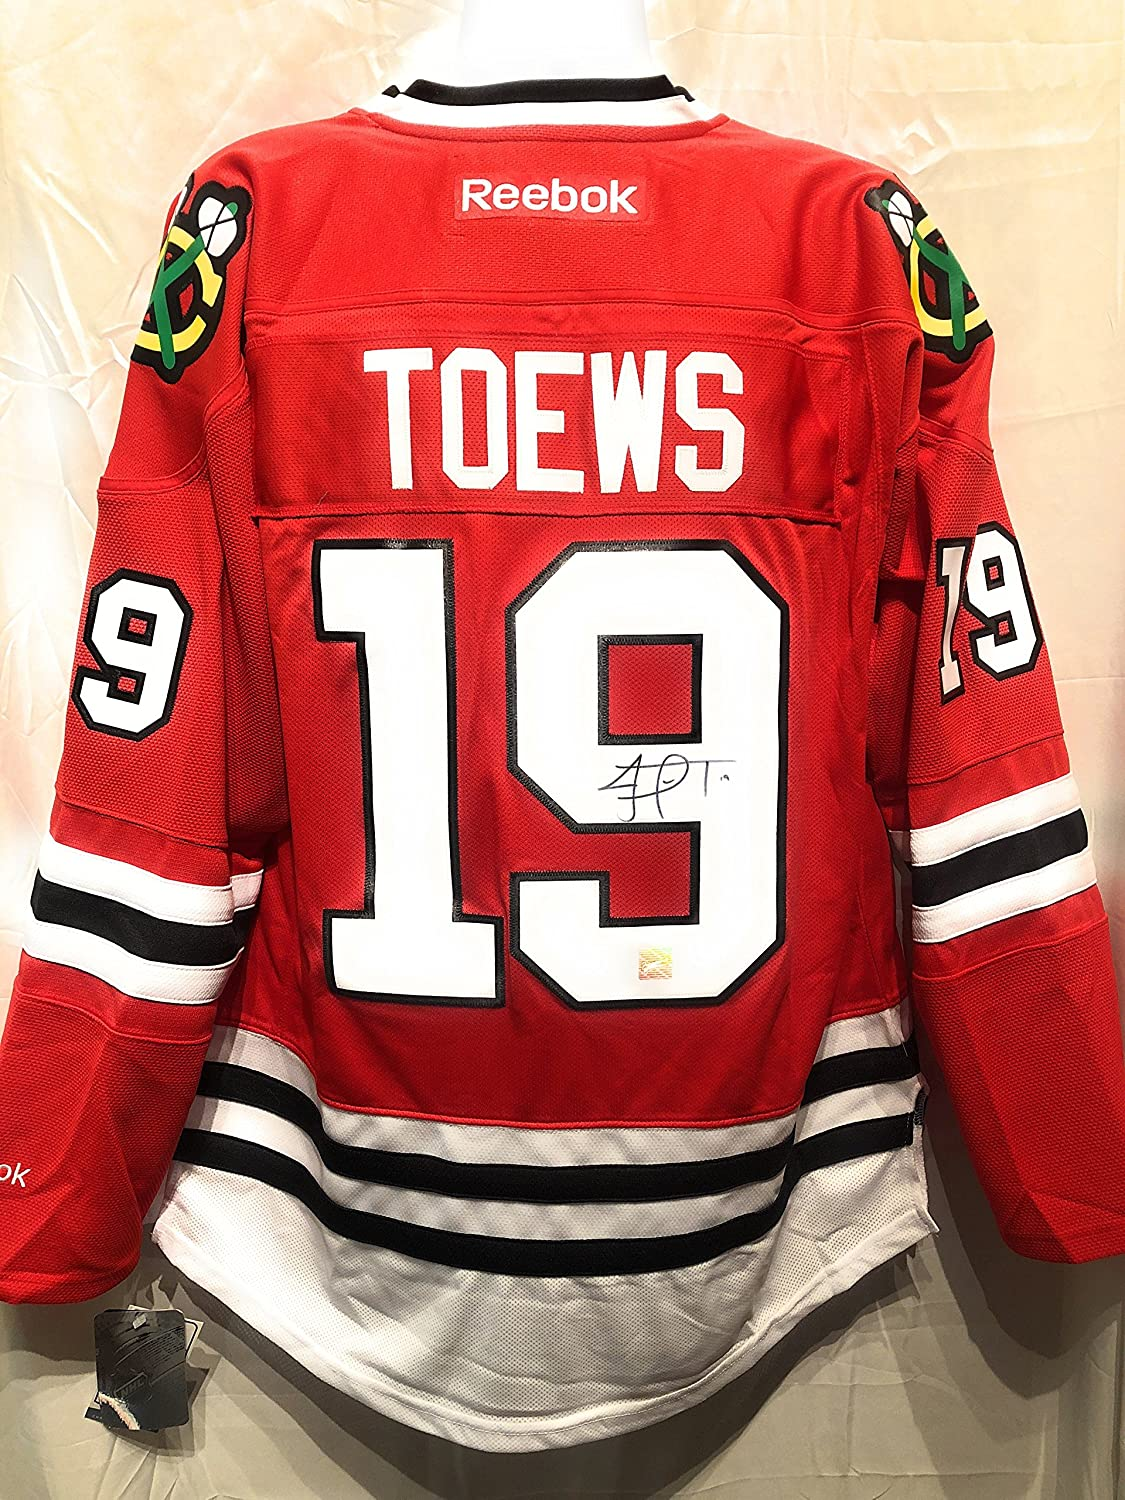 Jonathan Toews Chicago Blackhawks Signed Autograph Reebok Jersey Frameworth  Hologram Certified at Amazon s Sports Collectibles Store f1e82dc7a